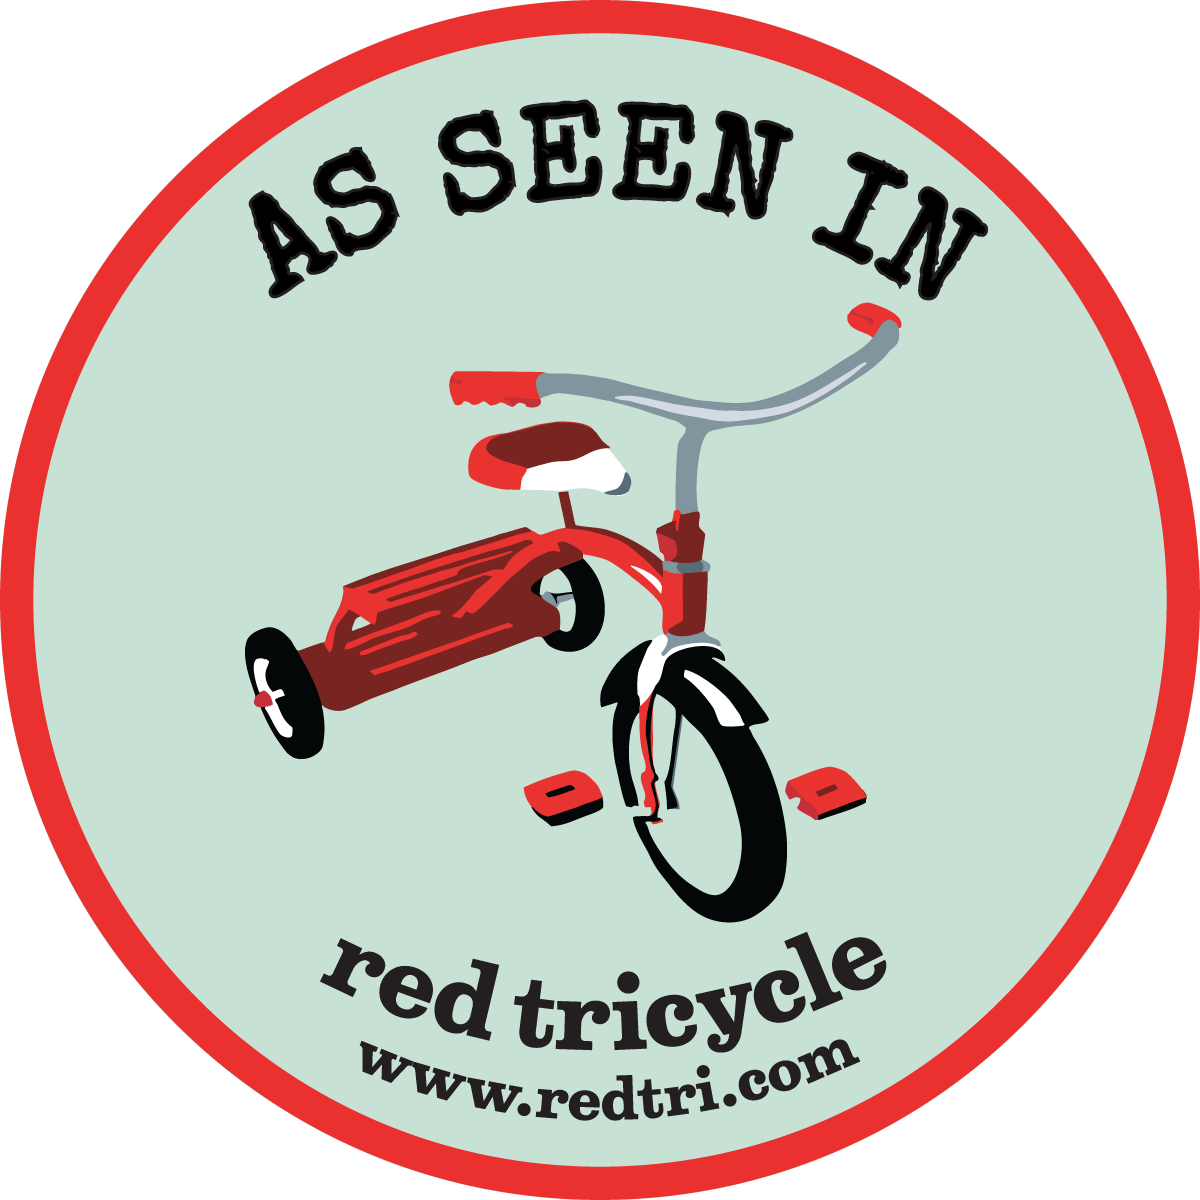 red tricycle: Blogs Every New & Expecting Mom Should Know